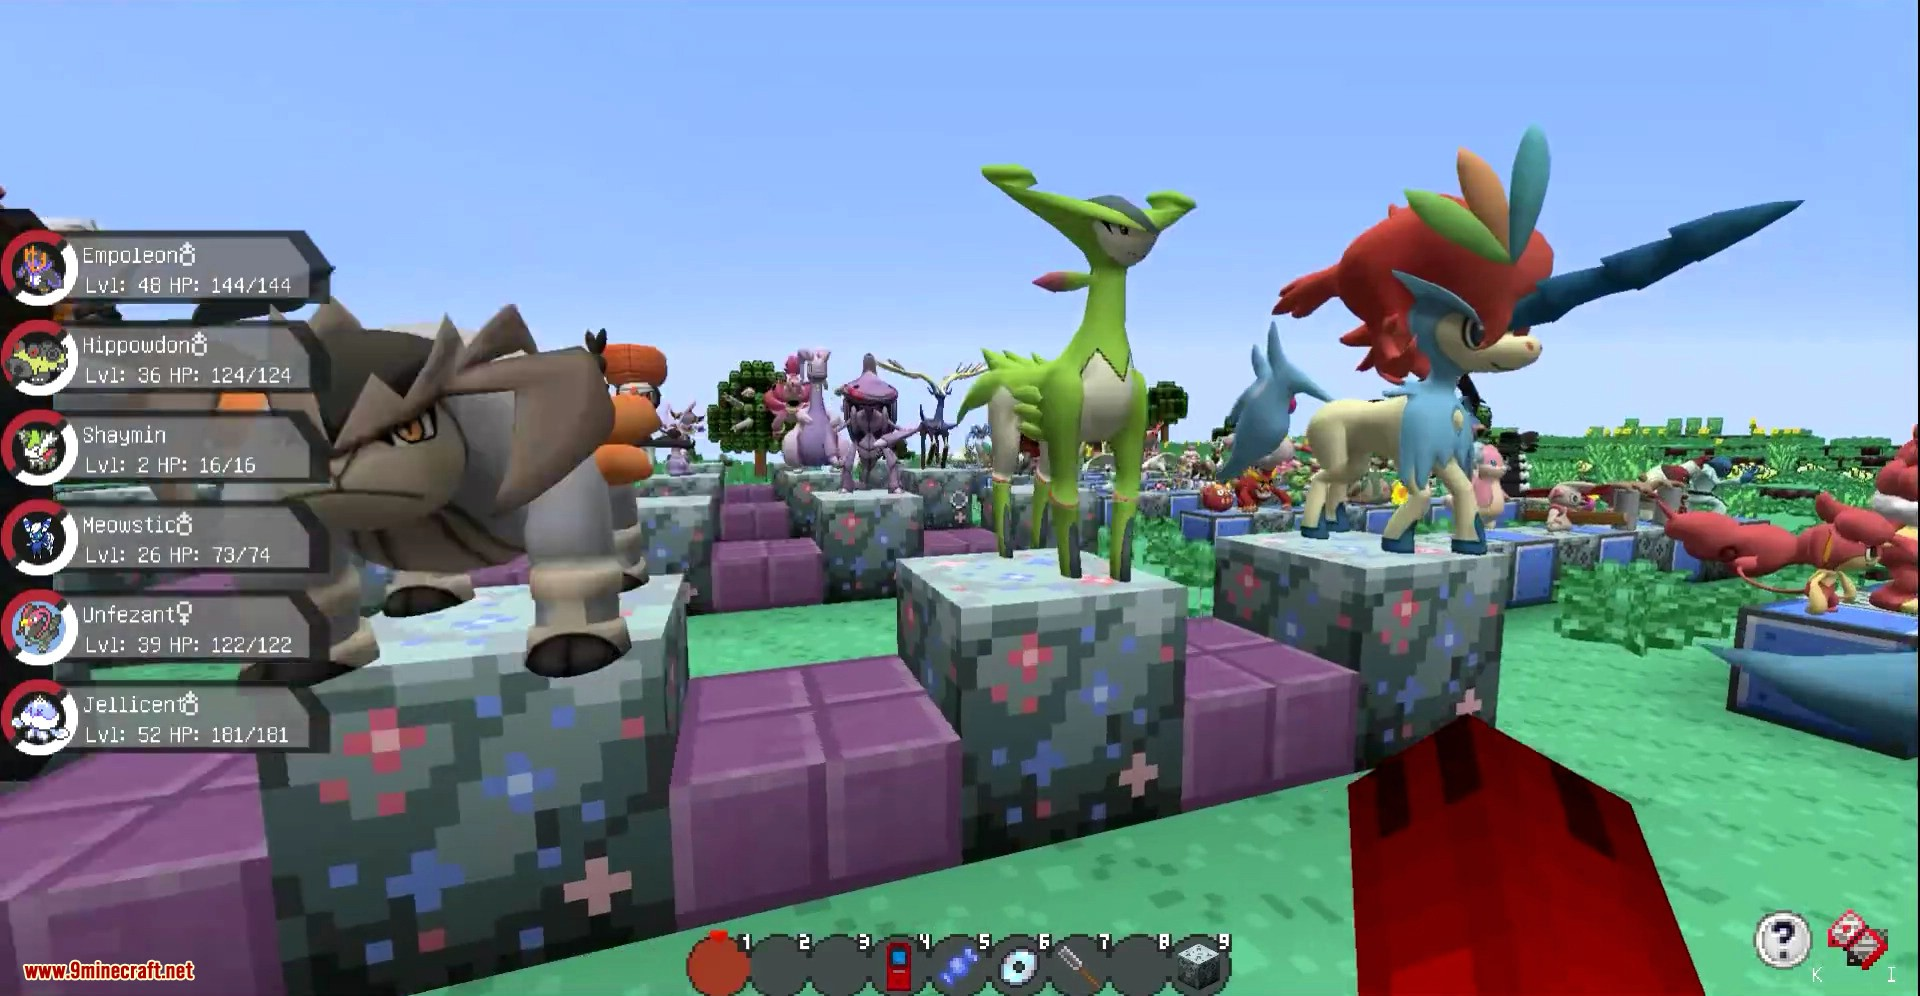 Pixelmon Mod Screenshots New 30